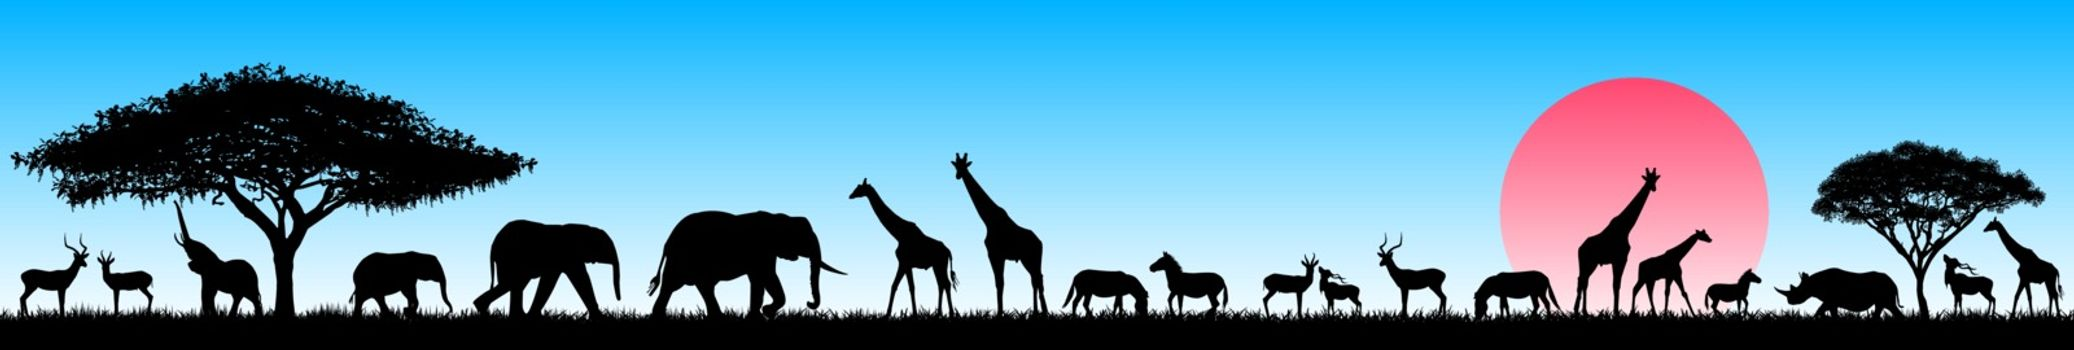 Silhouettes of wild animals of the African savannah. Set of different wild animals of Africa. African animals against the blue sky and the rising sun.